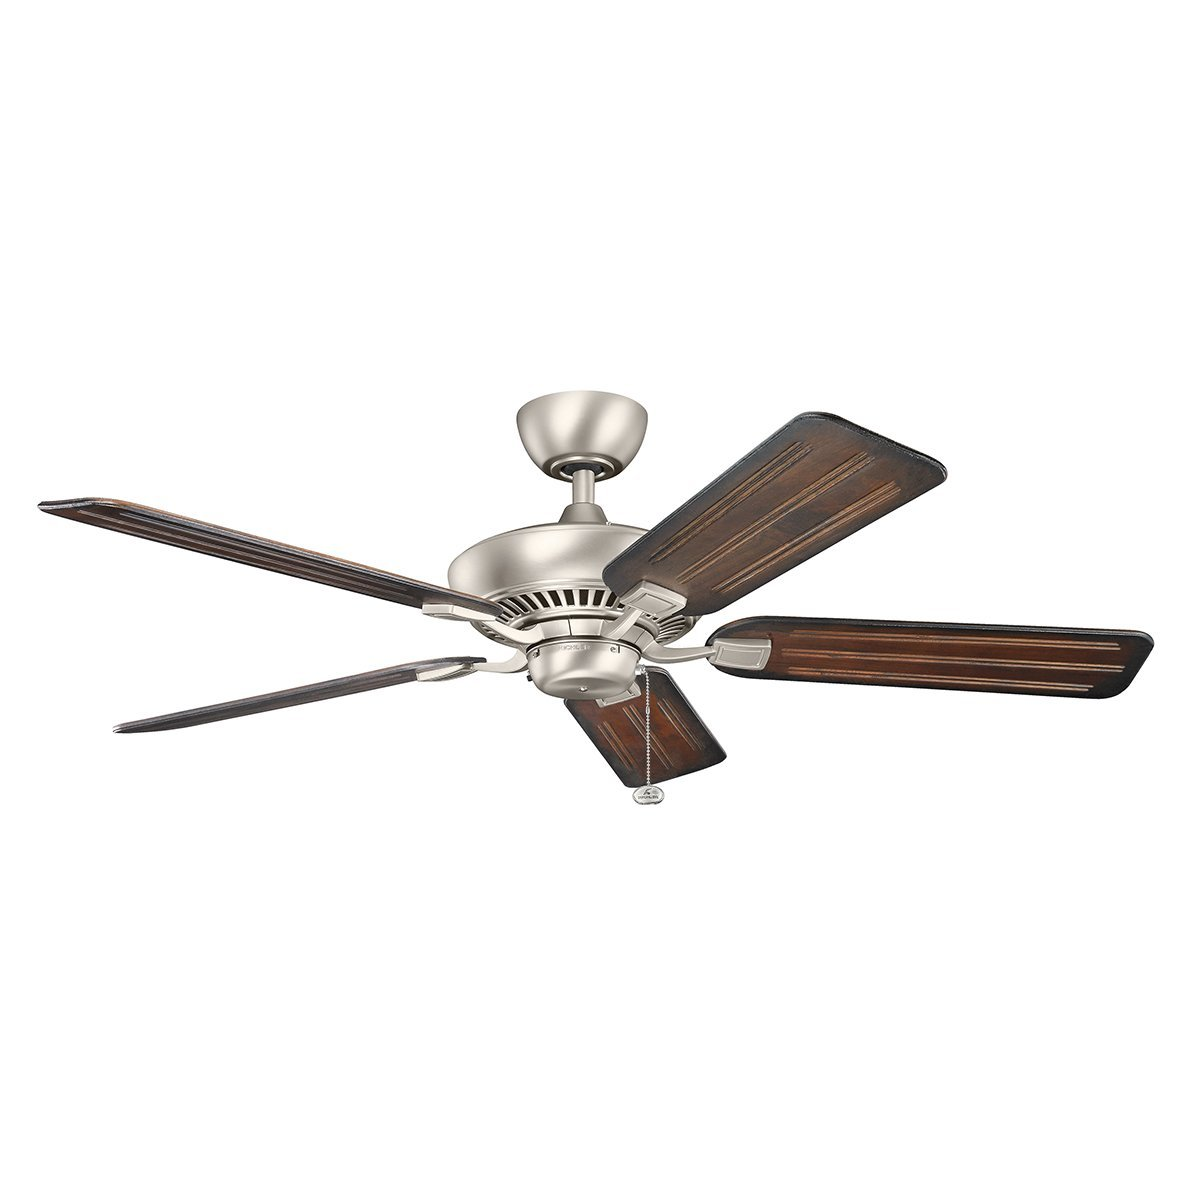 kichler ceiling fans kichler ceiling fans reviews best one 10163